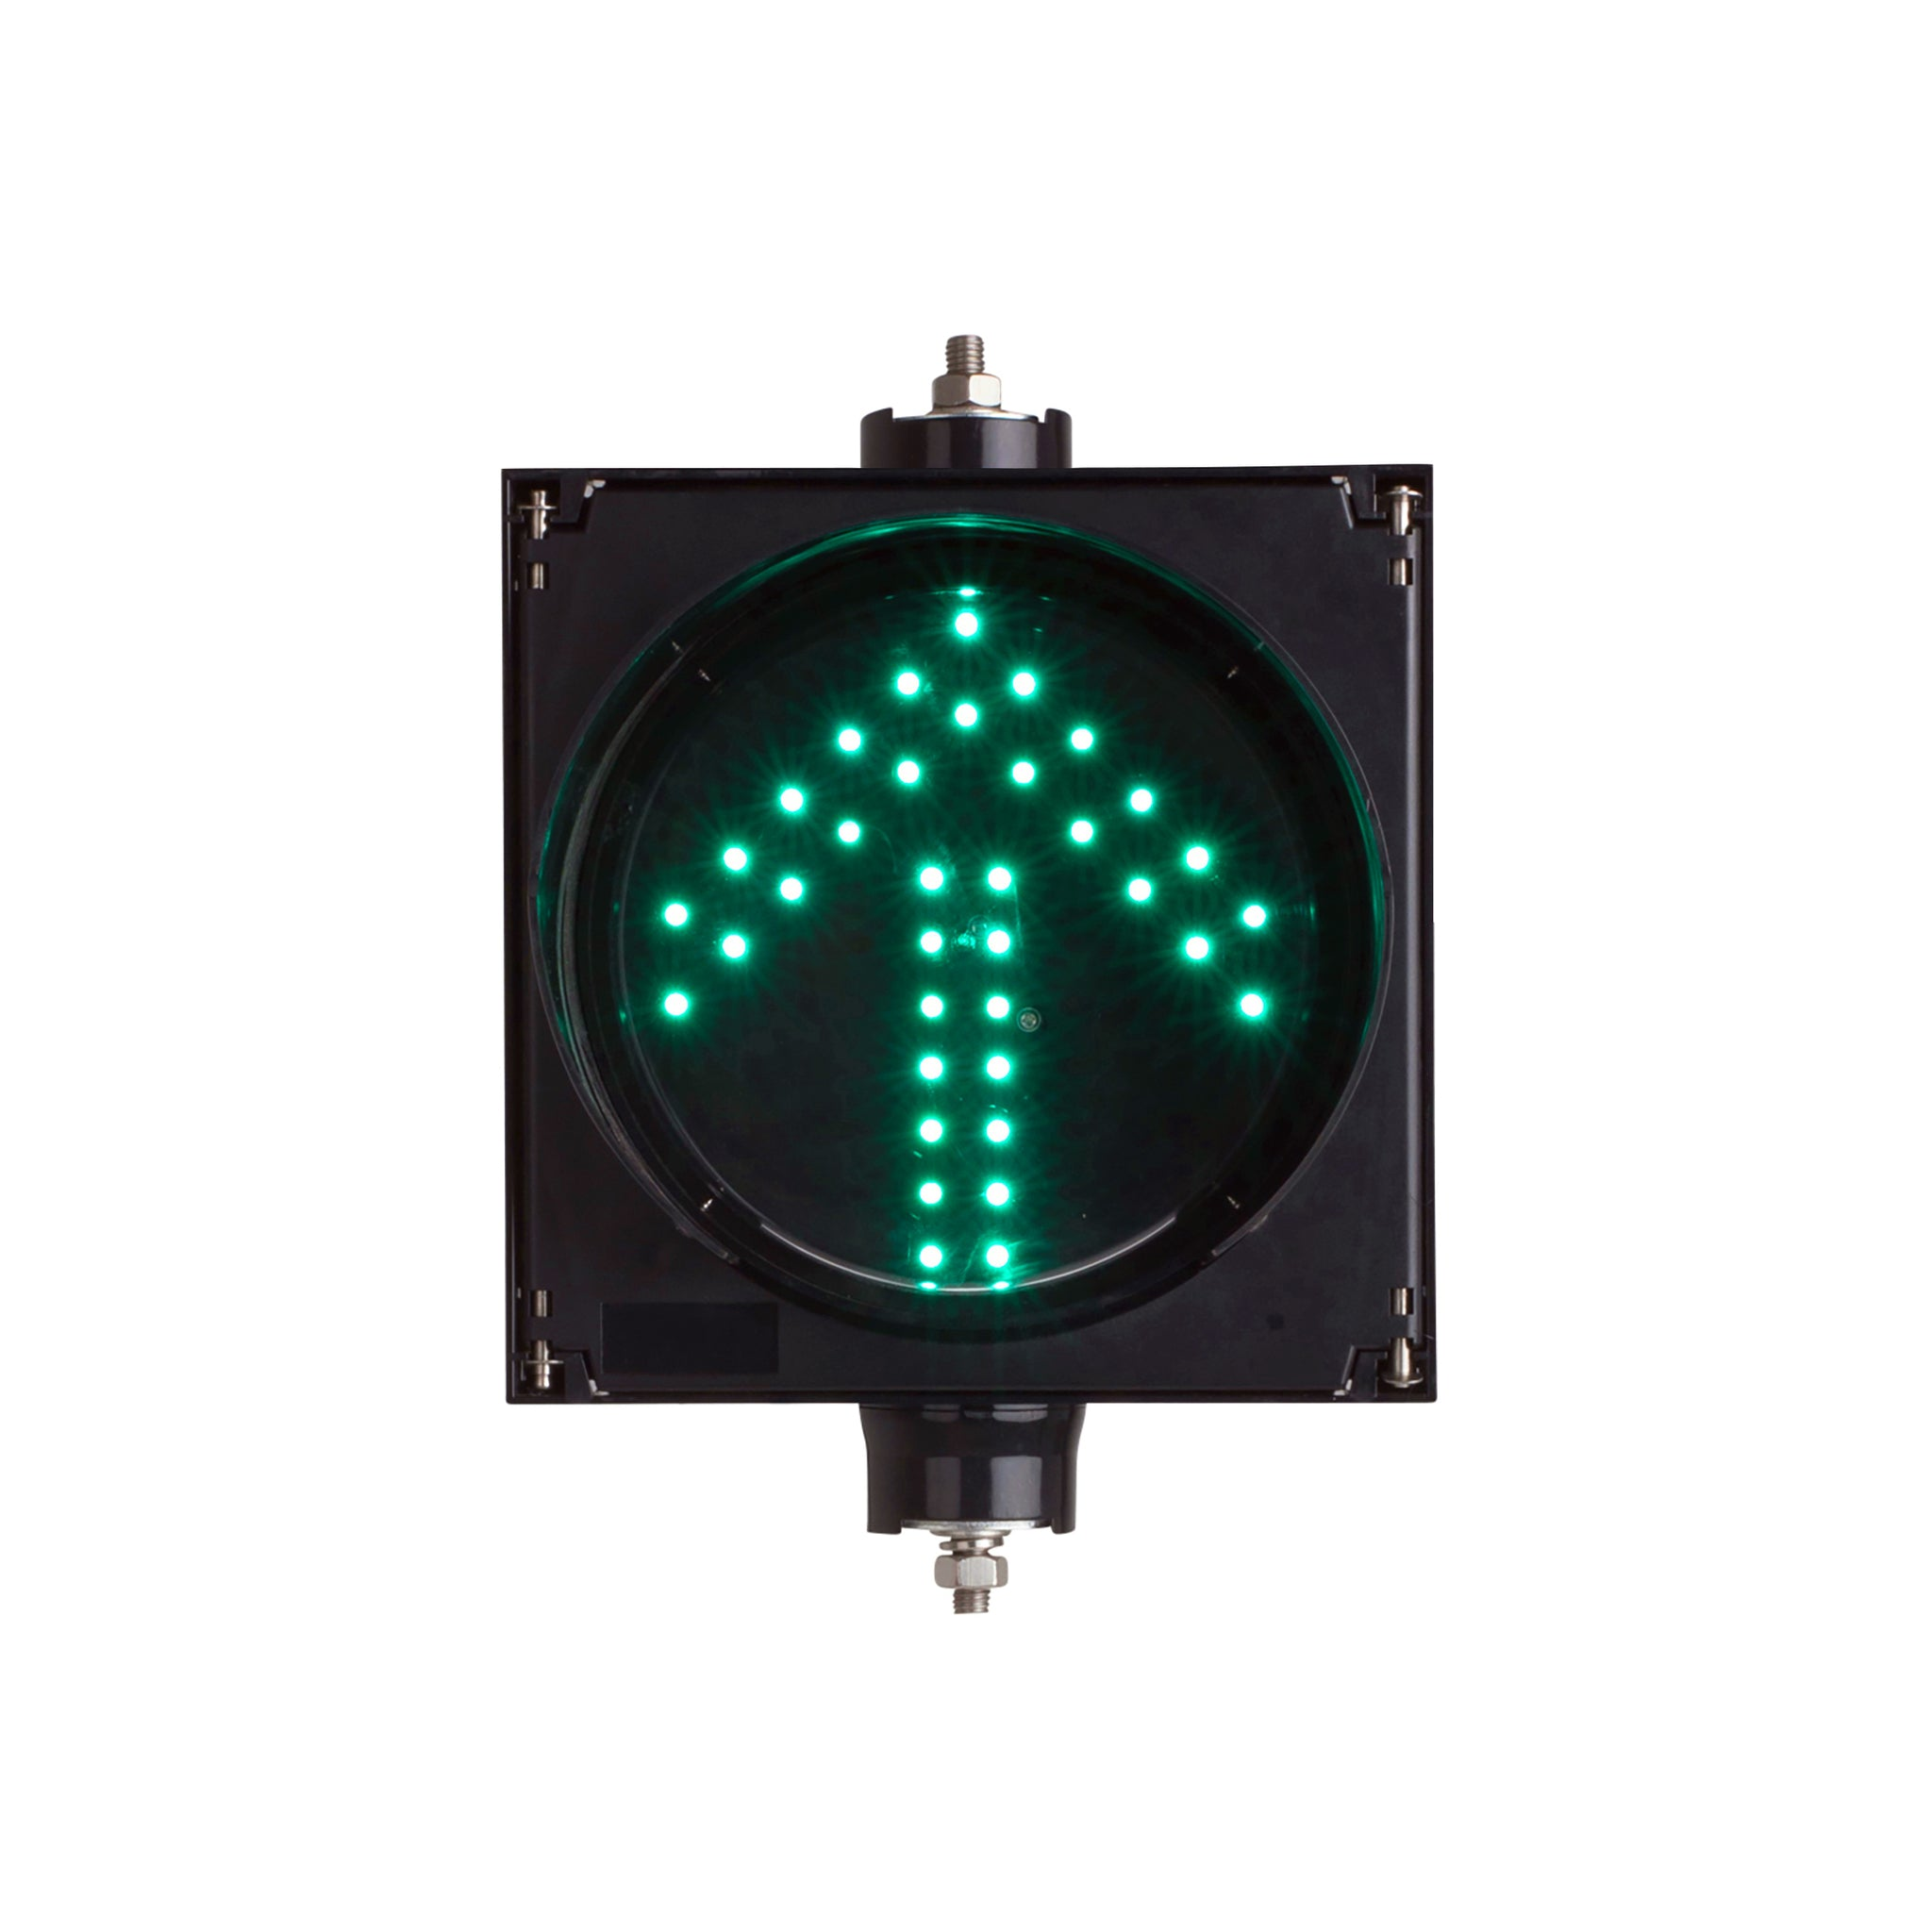 BNR Single Aspect 200mm LED Traffic Light 12-24VDC or 85-265VAC - Arrows and Colours, Flasher Module Options